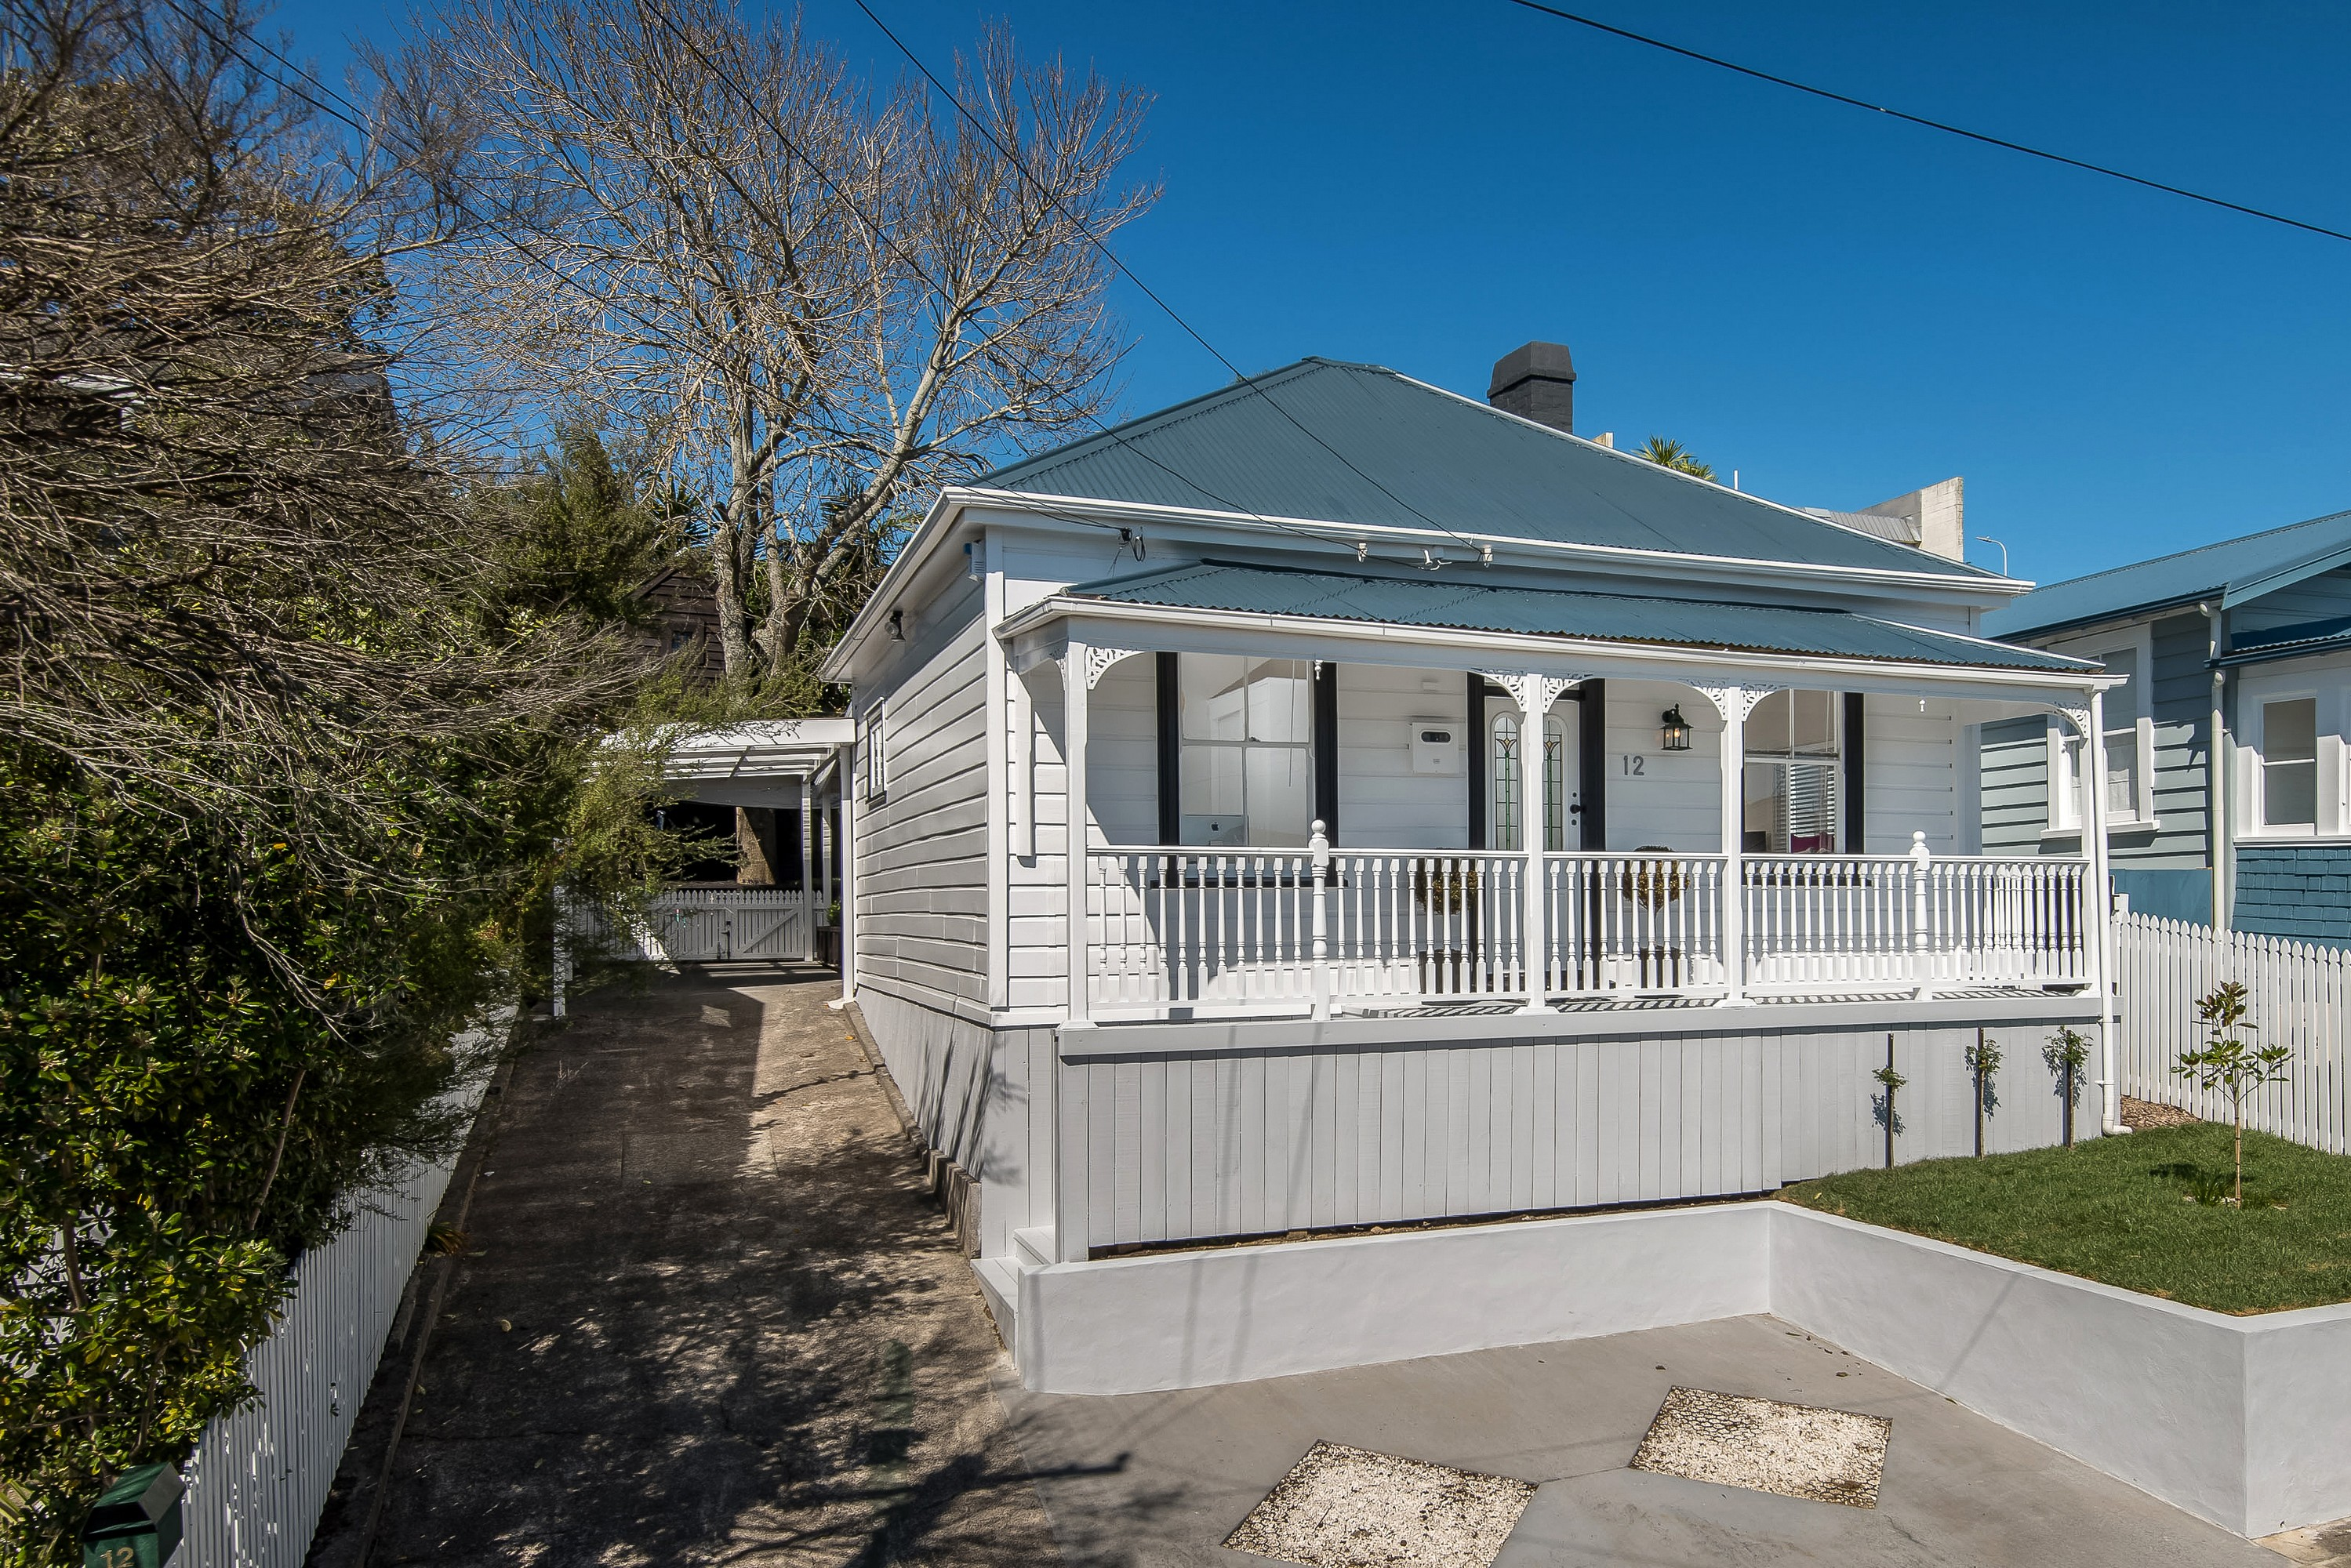 Single Family Home for Sale at 12 First Avenue, Kingsland, Auckland 12 First Avenue Kingsland Auckland, Auckland, 1021 New Zealand